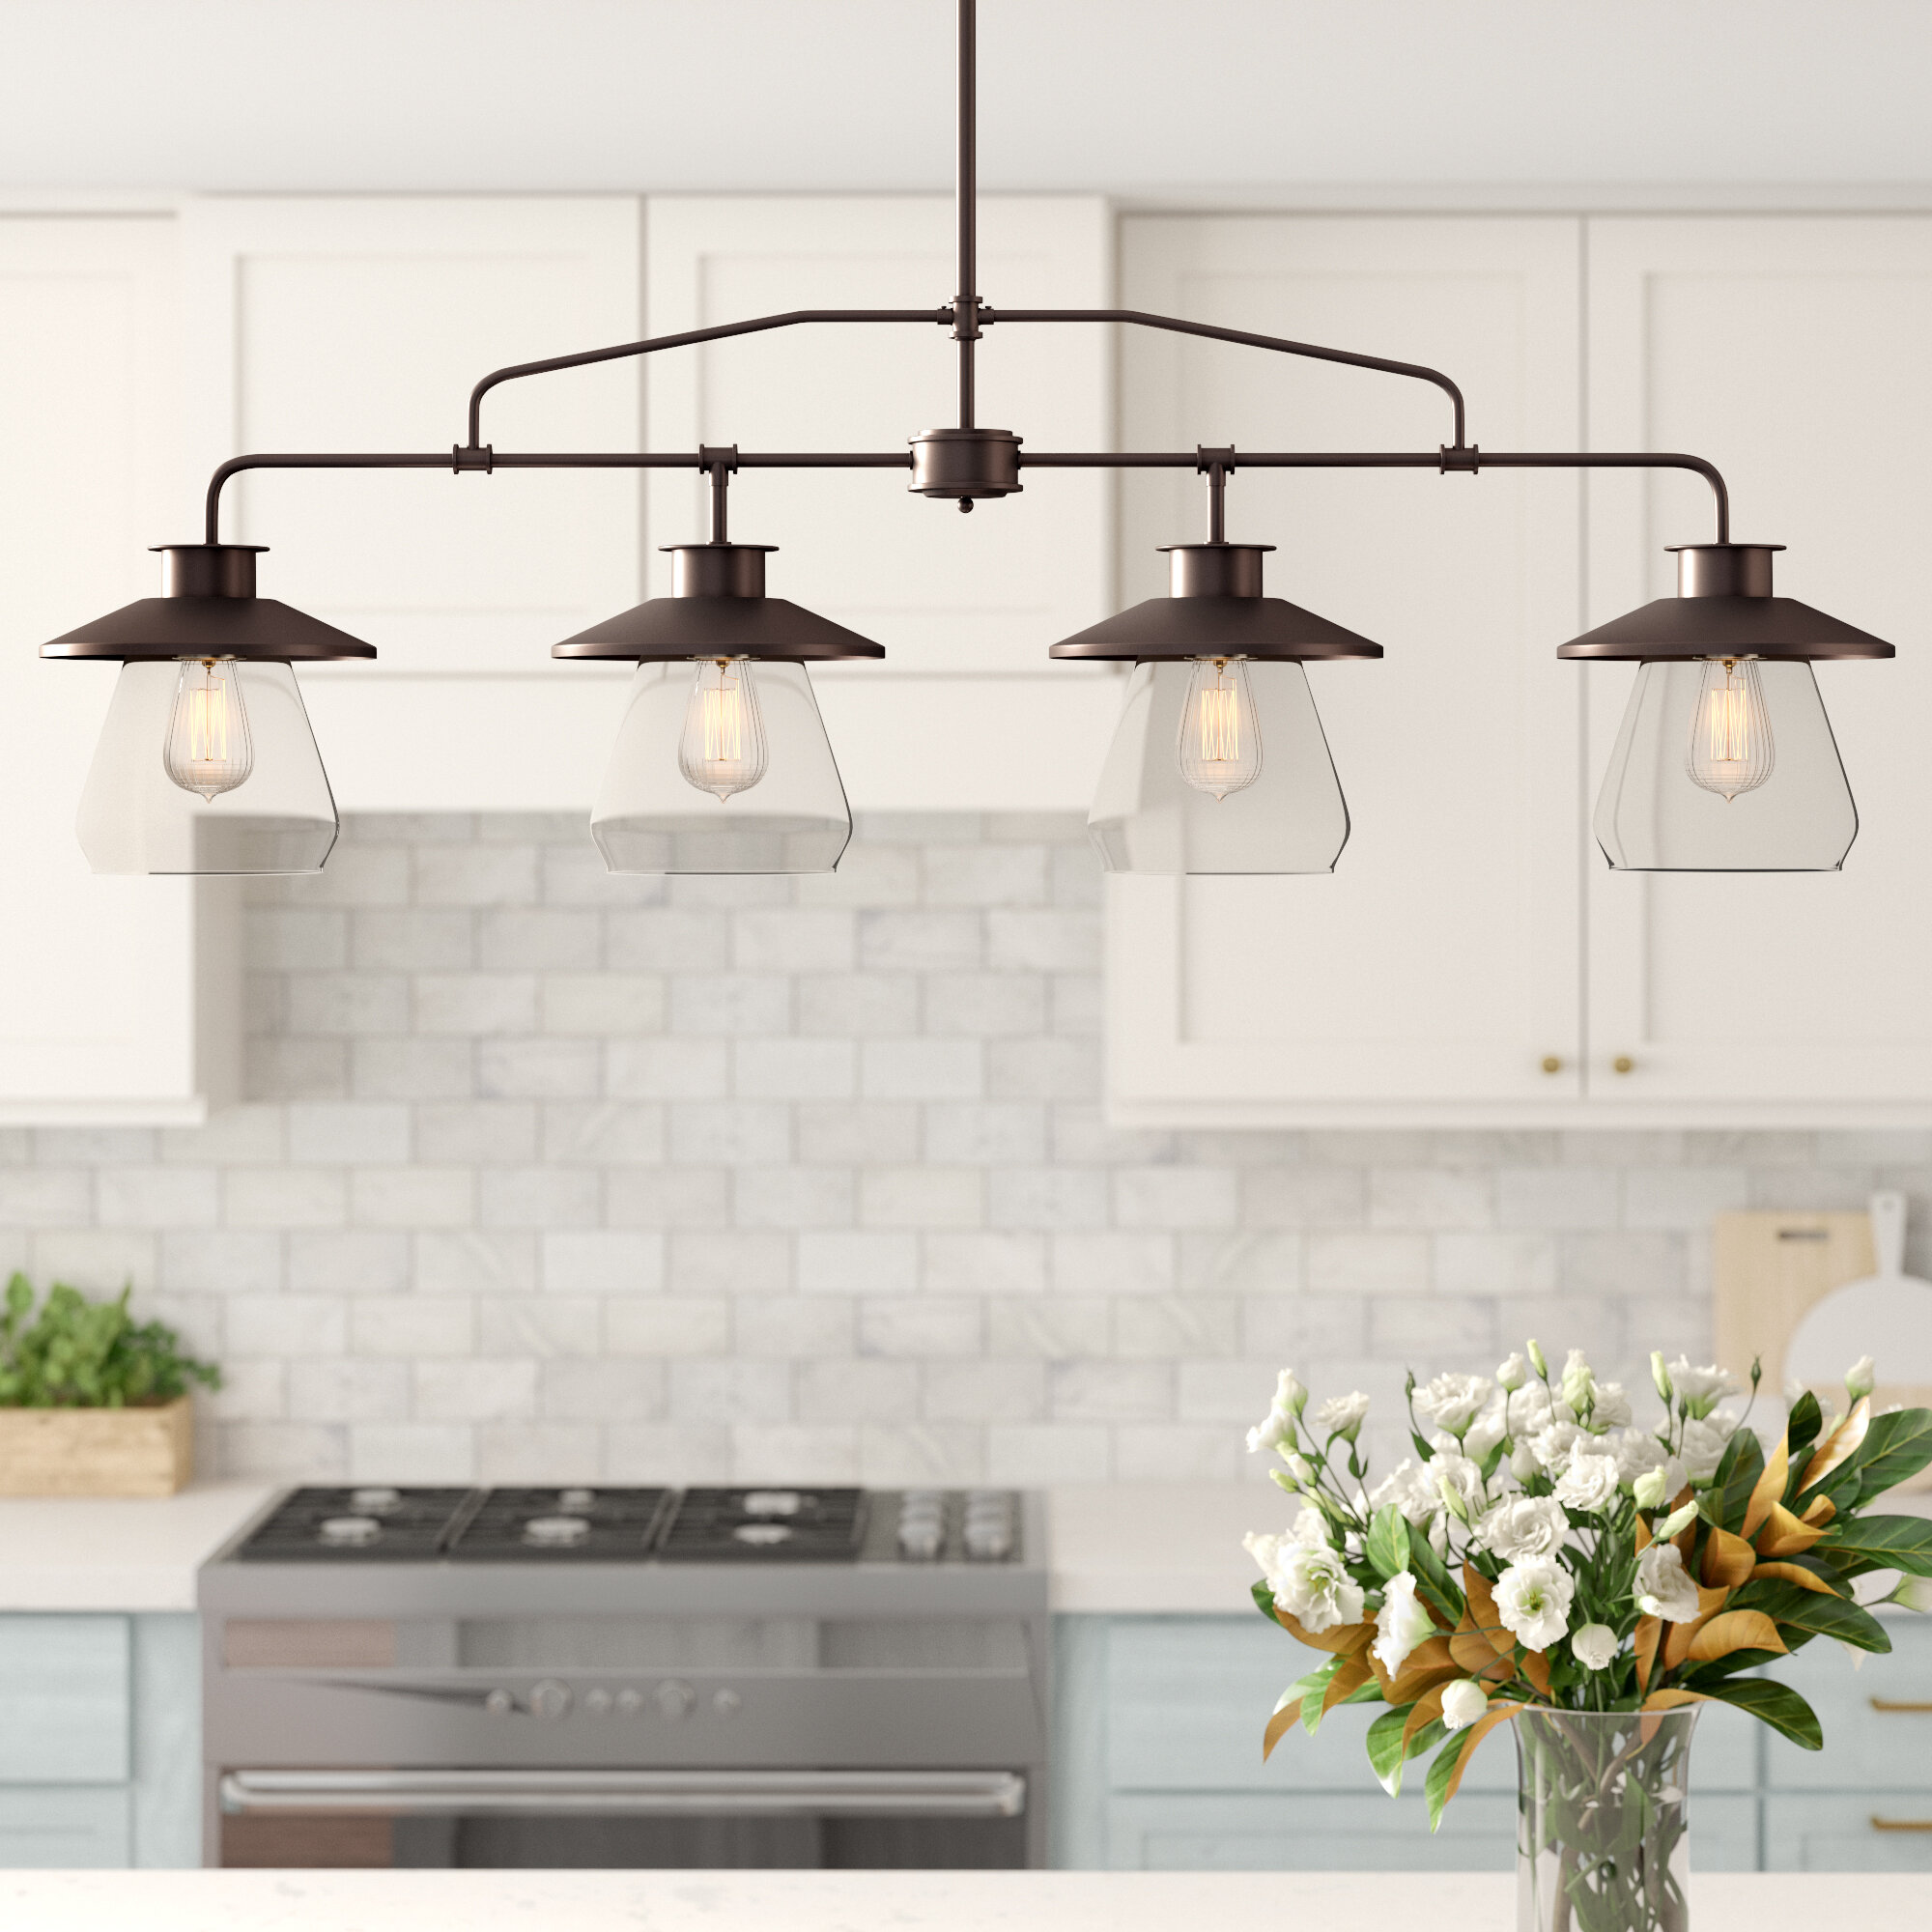 Ledbury 4 Light Kitchen Island Pendant Reviews Joss Main